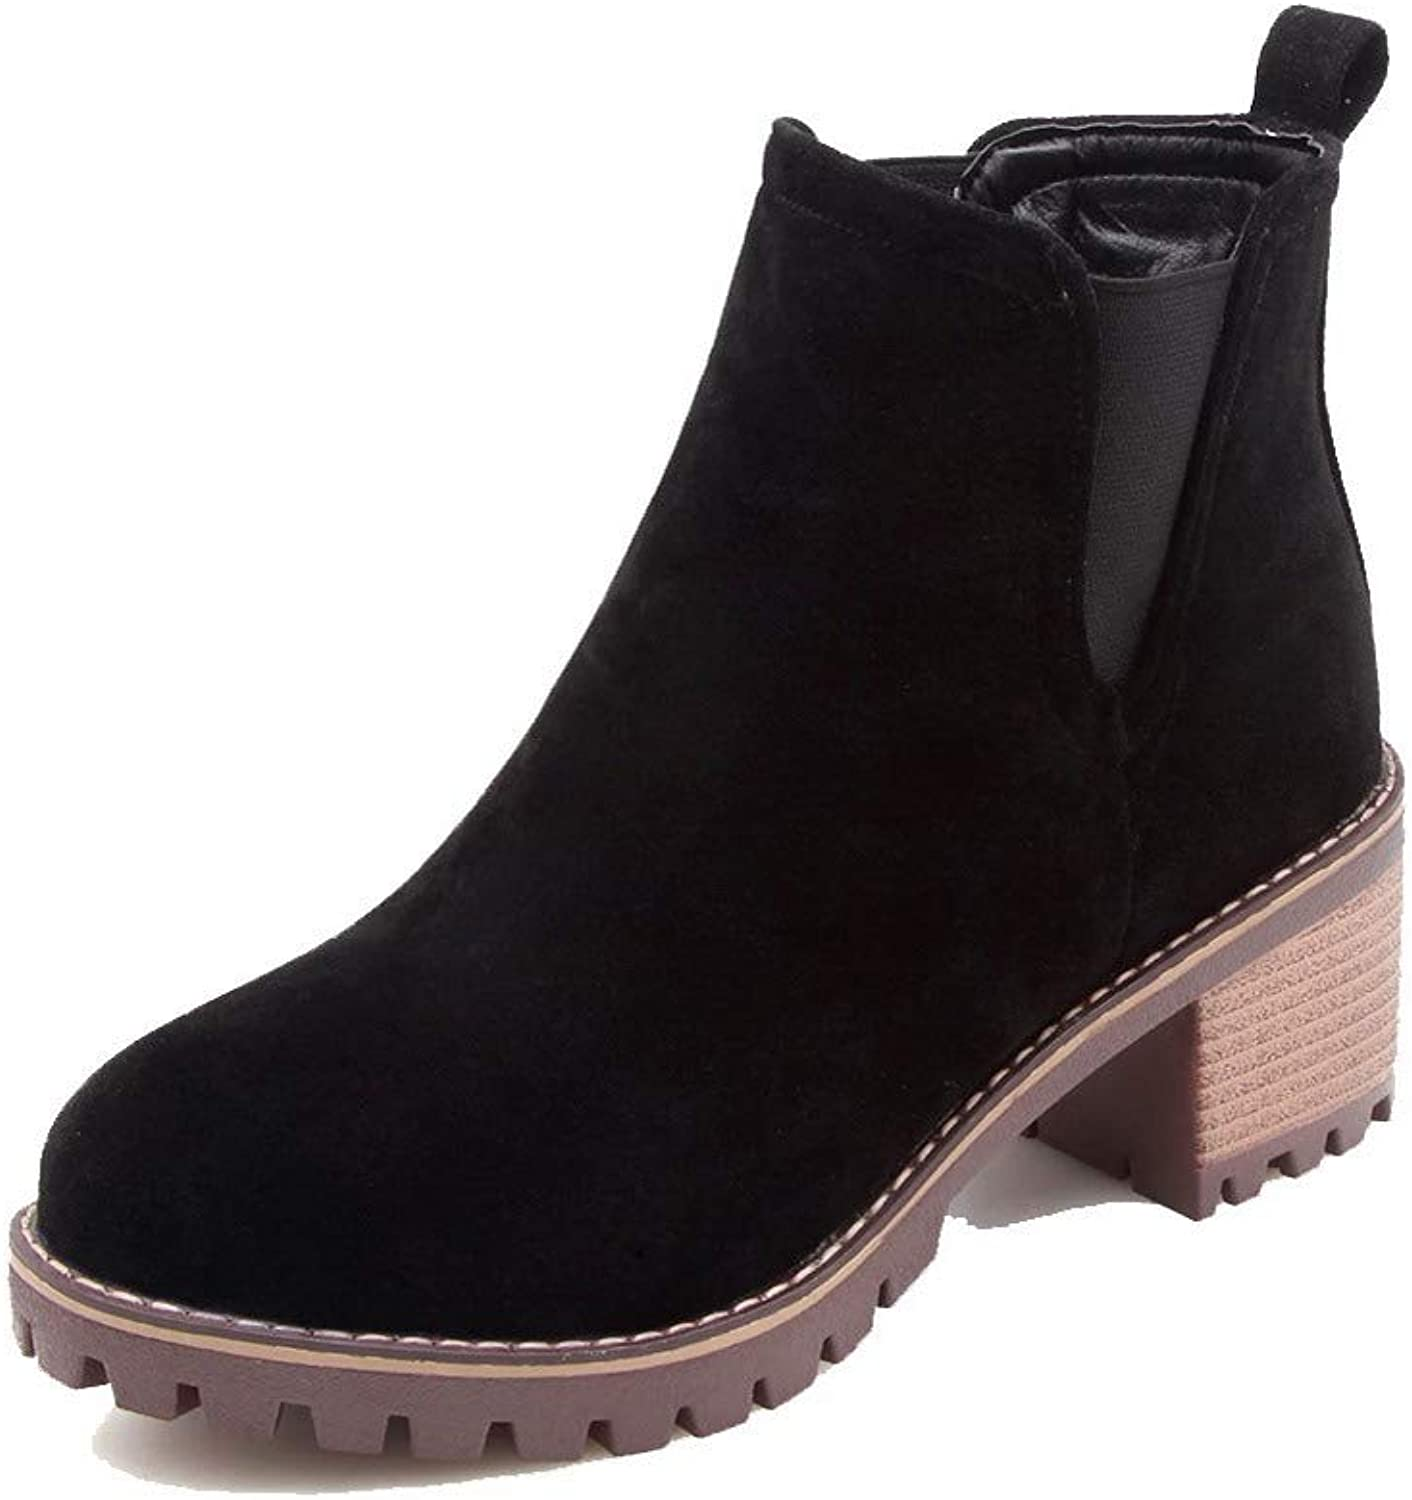 AllhqFashion Women's Round-Toe Low-Top Kitten-Heels Solid Frosted Boots, FBUXD121021